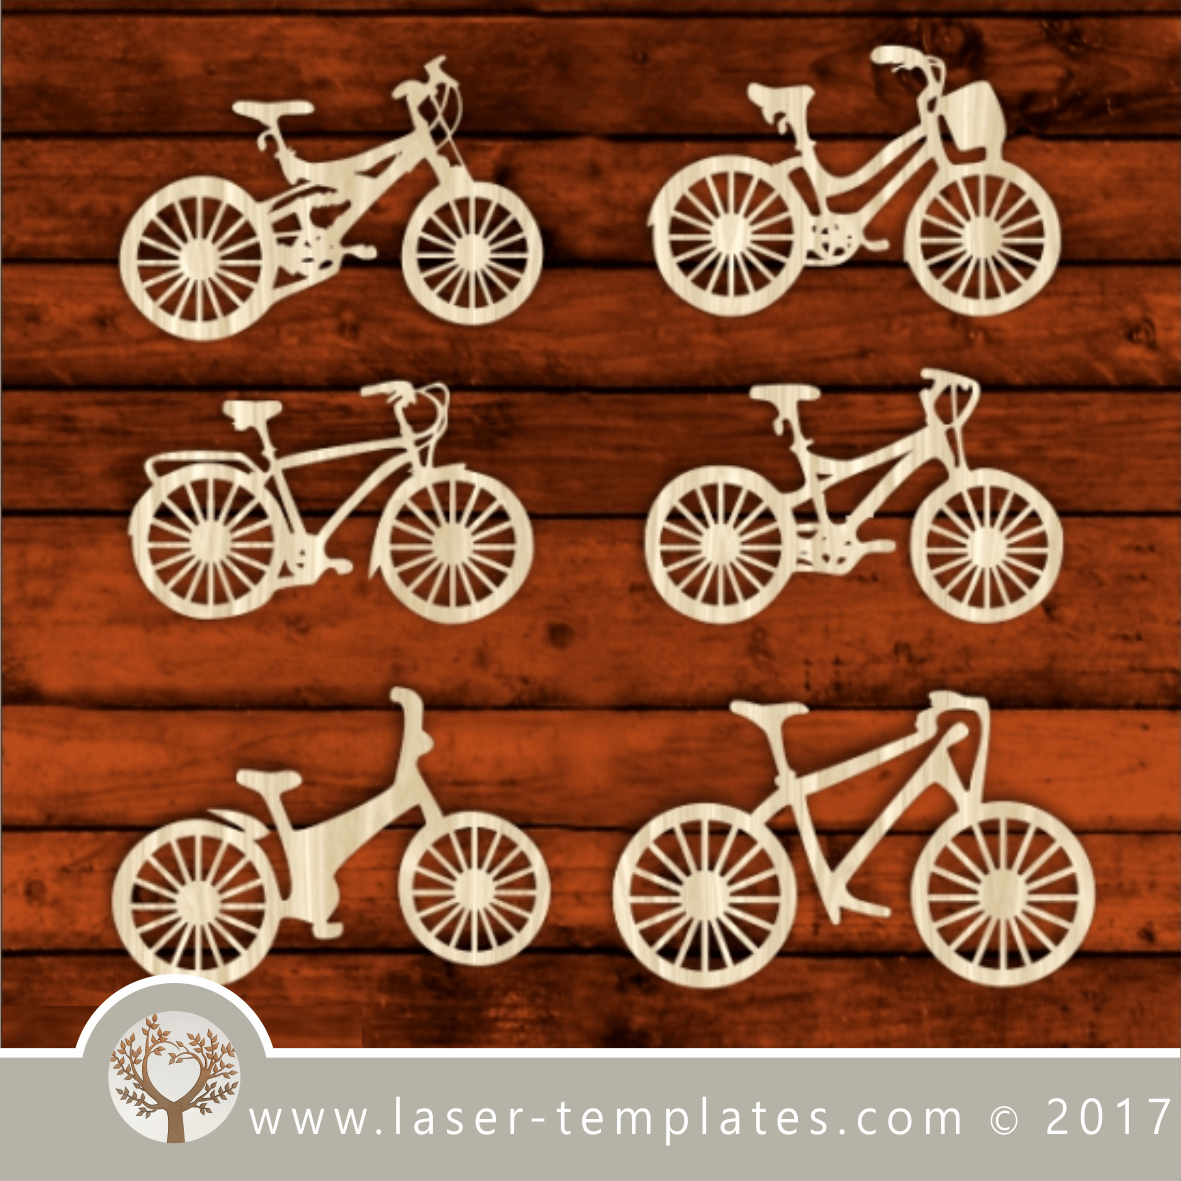 0a9adf614b Classic bike, bicycle laser cut template, pattern, design. Free vector  download every day. Bicycles bikes